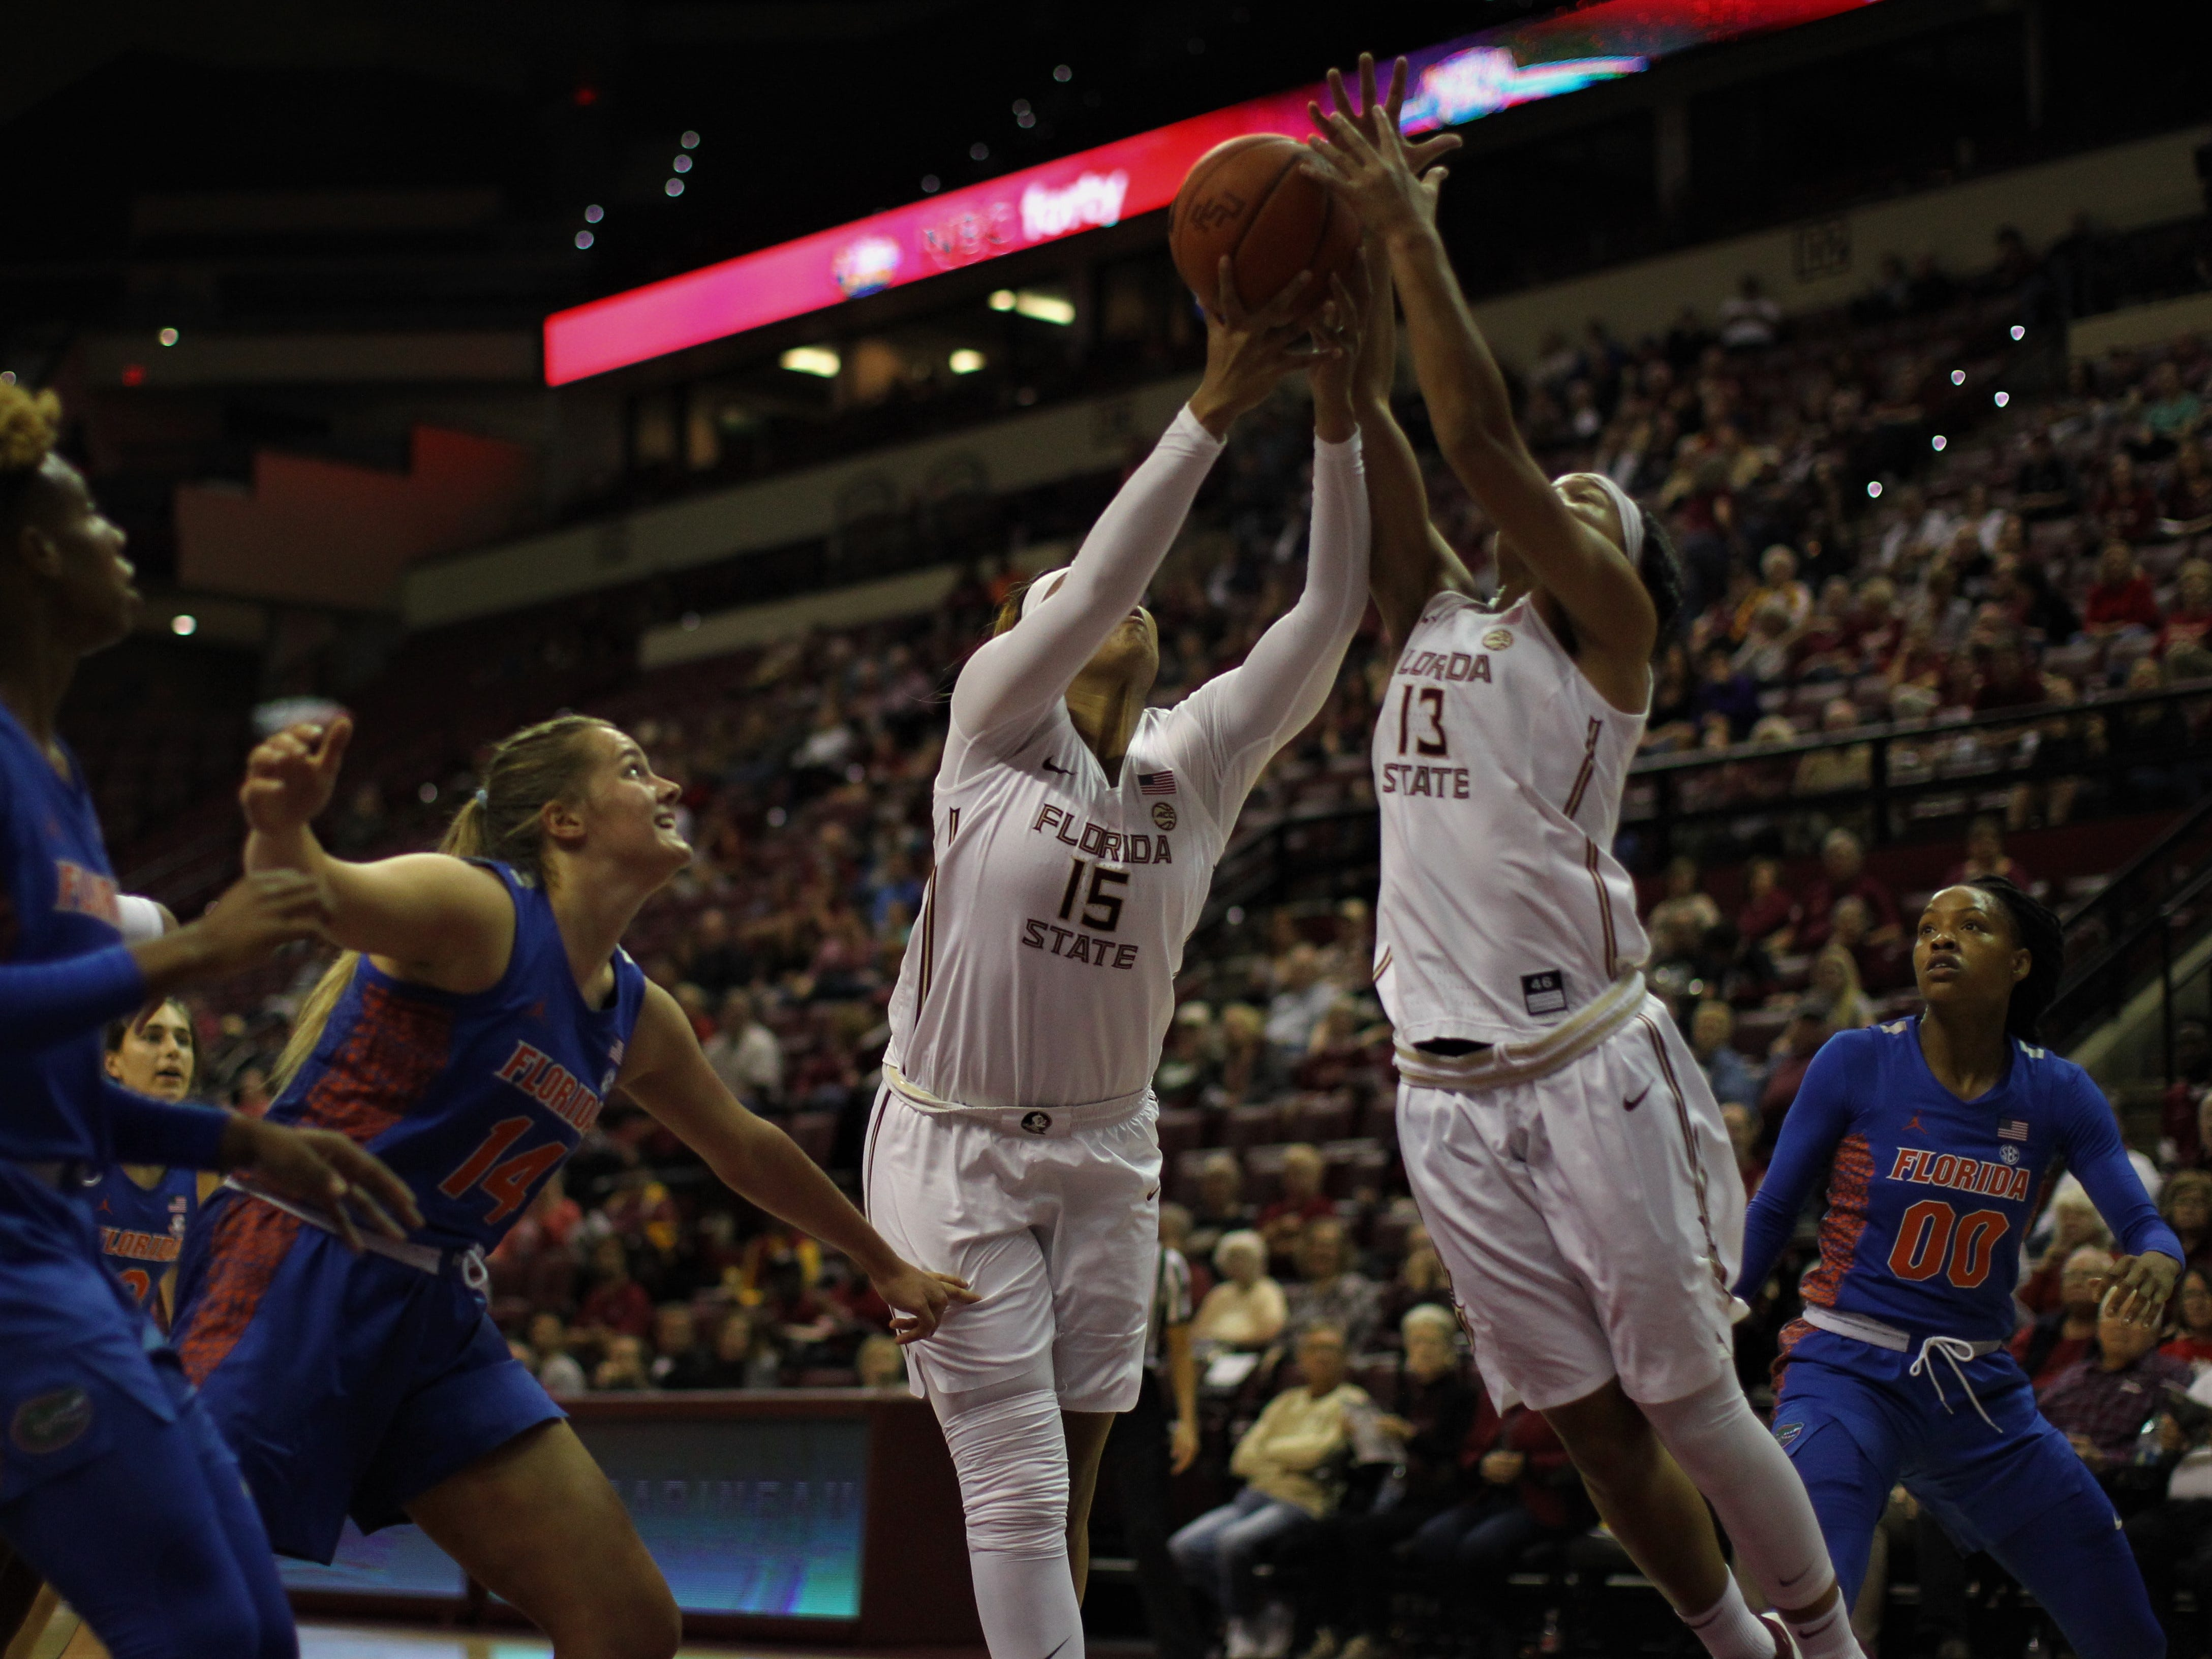 Florida State's Kiah Gillespie (15) and Nausia Woolfolk (13) try to grab a rebound during the first half of the Seminoles' game against Florida at the Tucker Civic Center on Nov. 11, 2018.